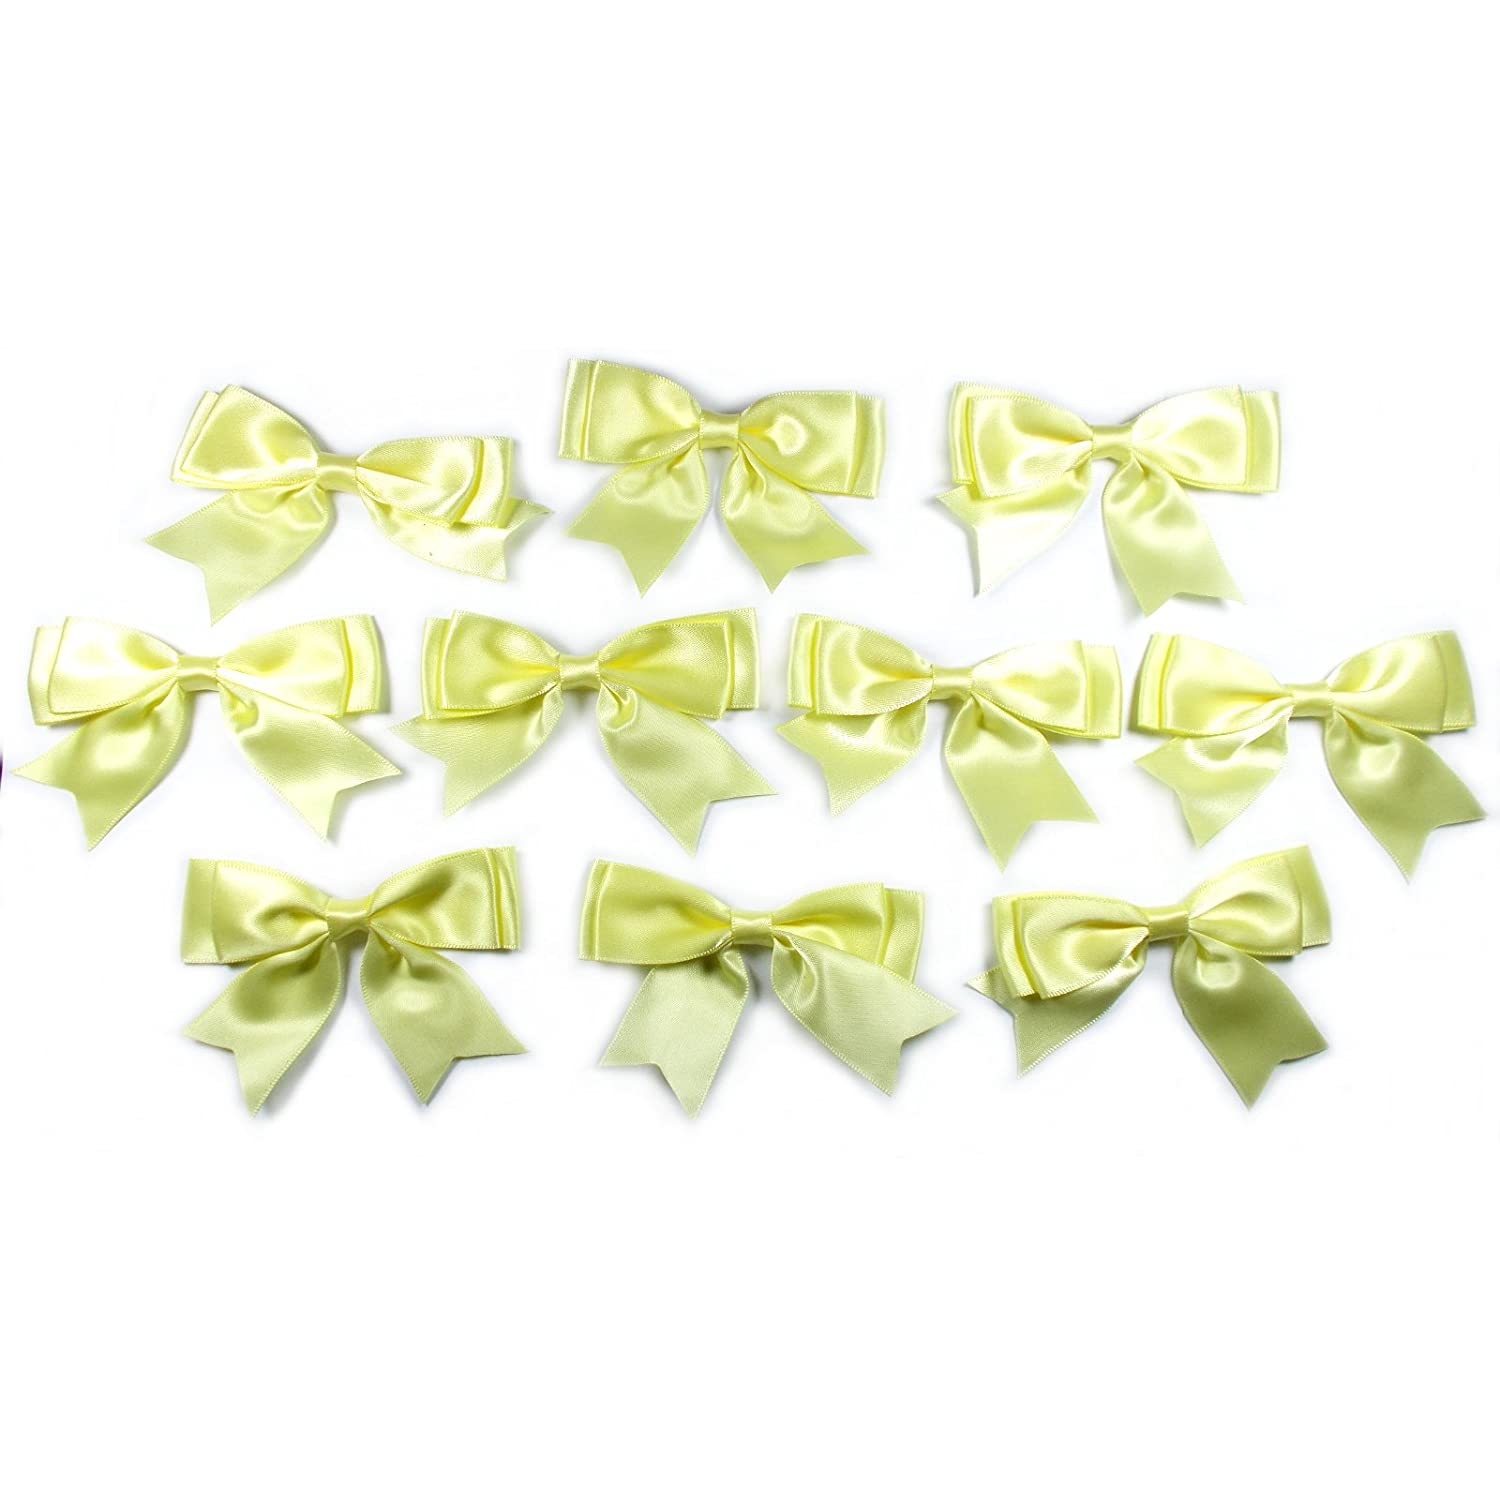 10 x  DARK GREEN SATIN BOWS 7mm wide Ribbon 30mm wide Bow is approx